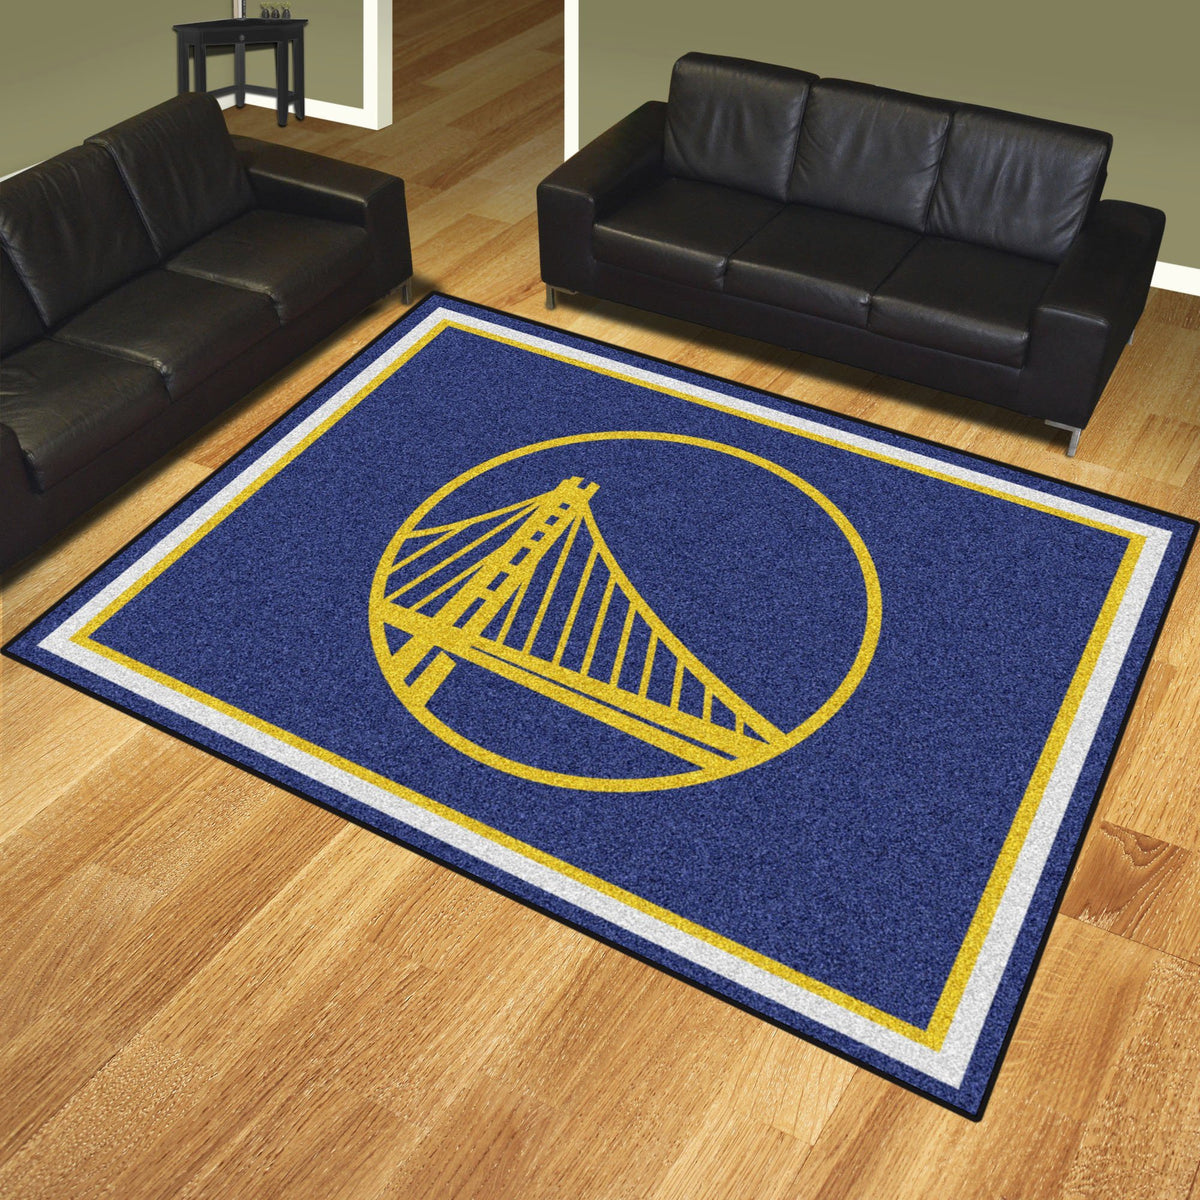 NBA - 8' x 10' Rug NBA Mats, Plush Rugs, 8x10 Rug, NBA, Home Fan Mats Golden State Warriors